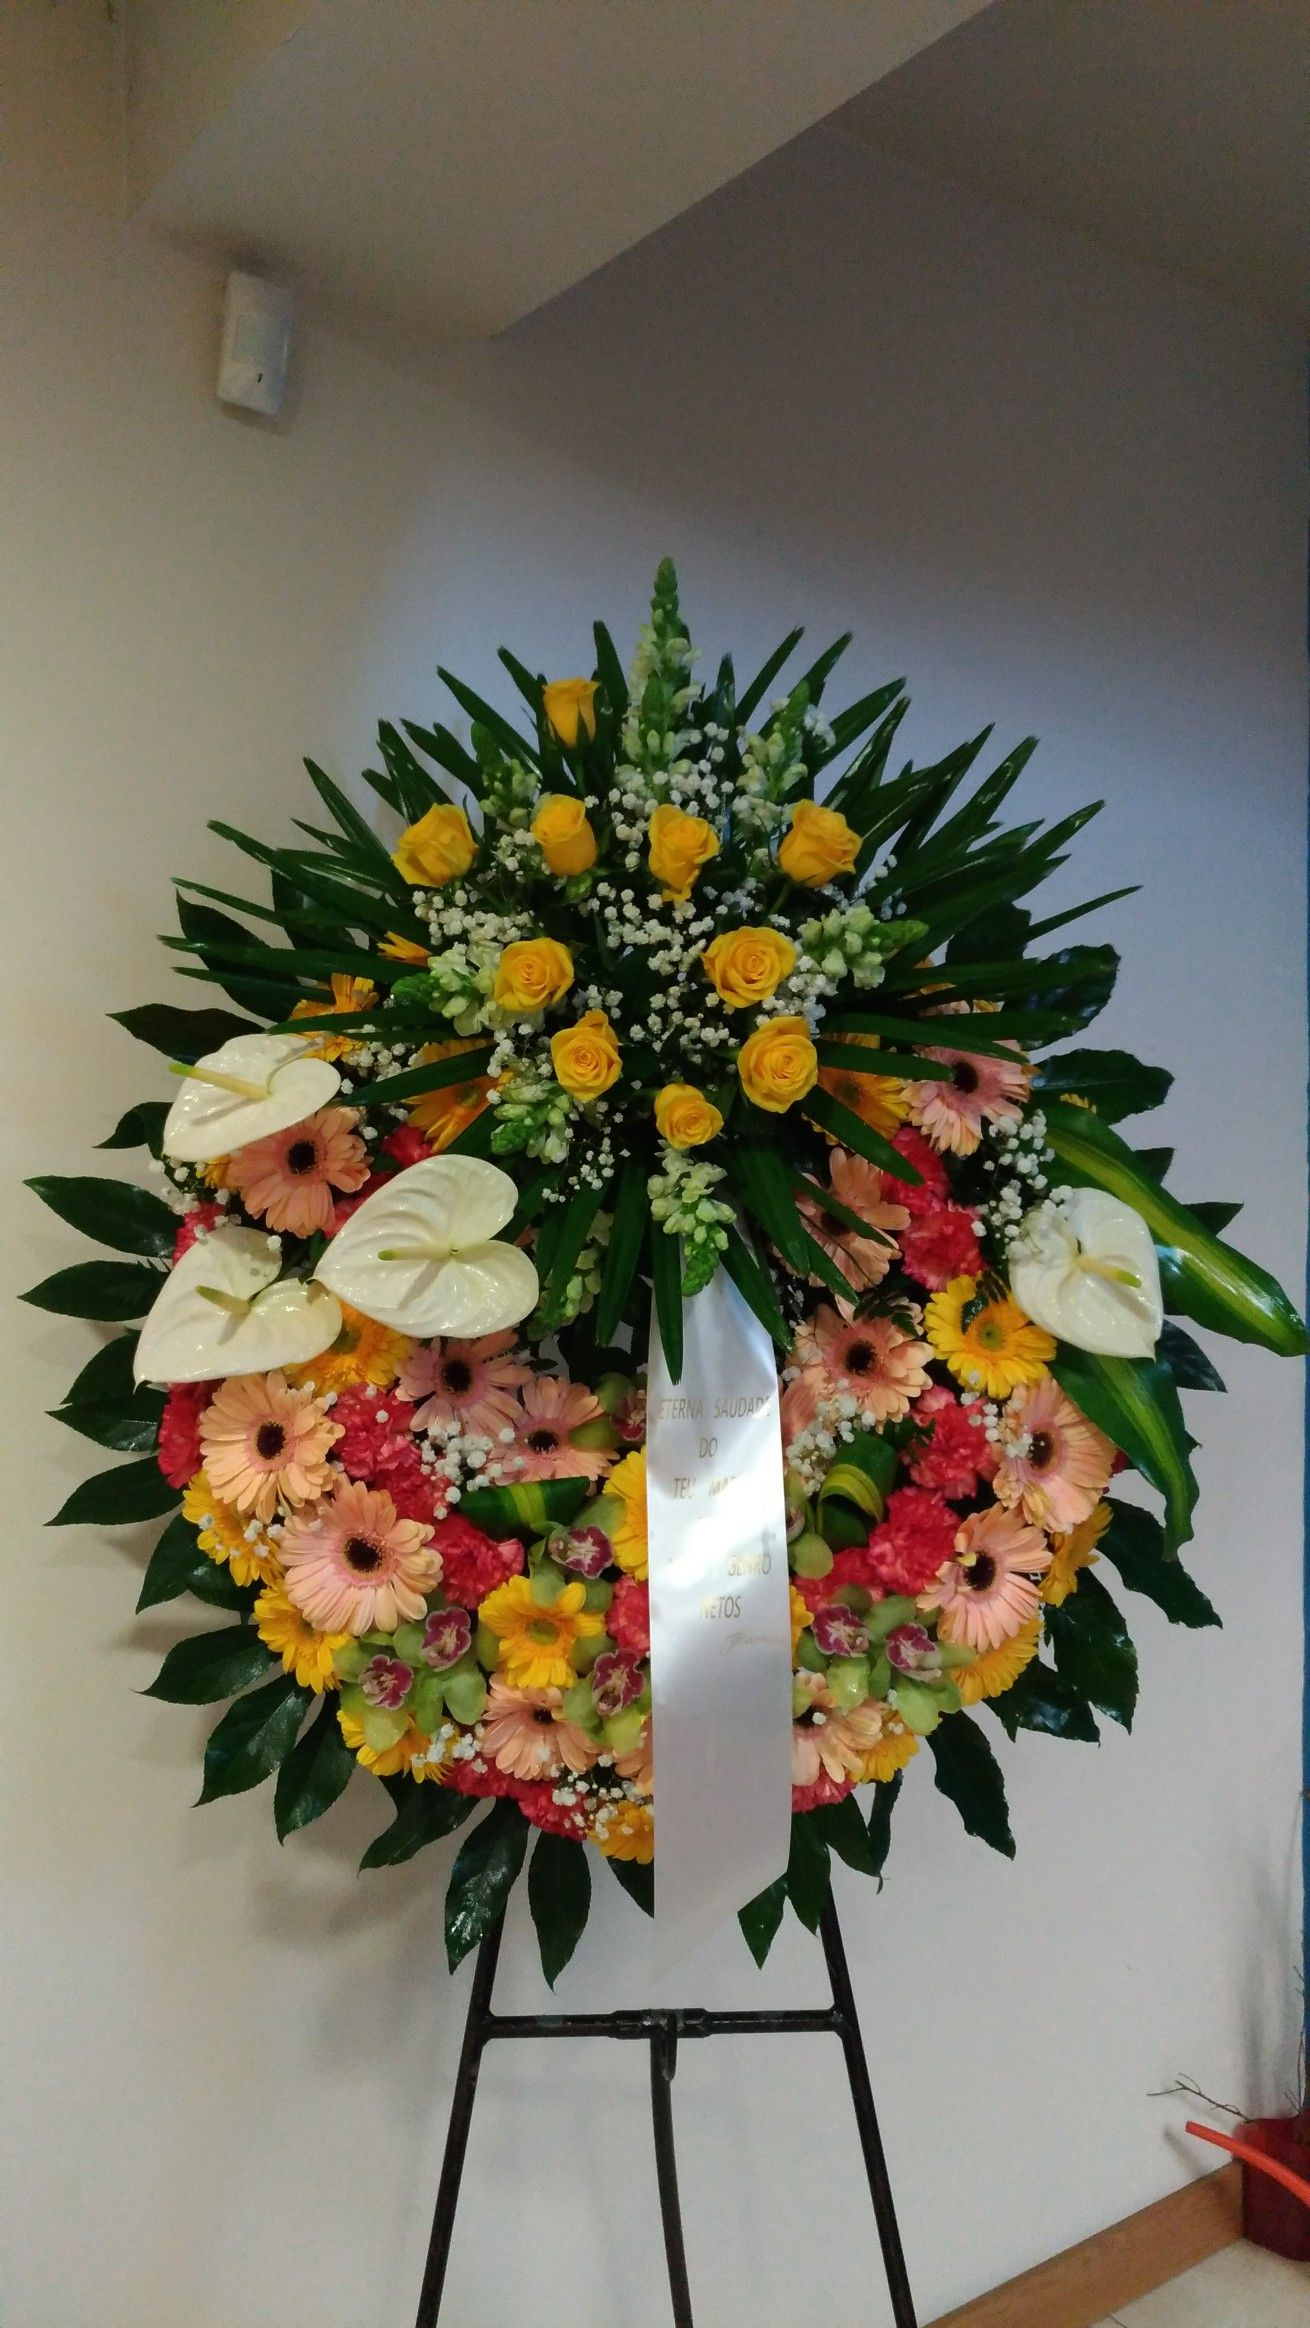 Pin By Kayla Lee On Funeral Flowers Pinterest Funeral Funeral